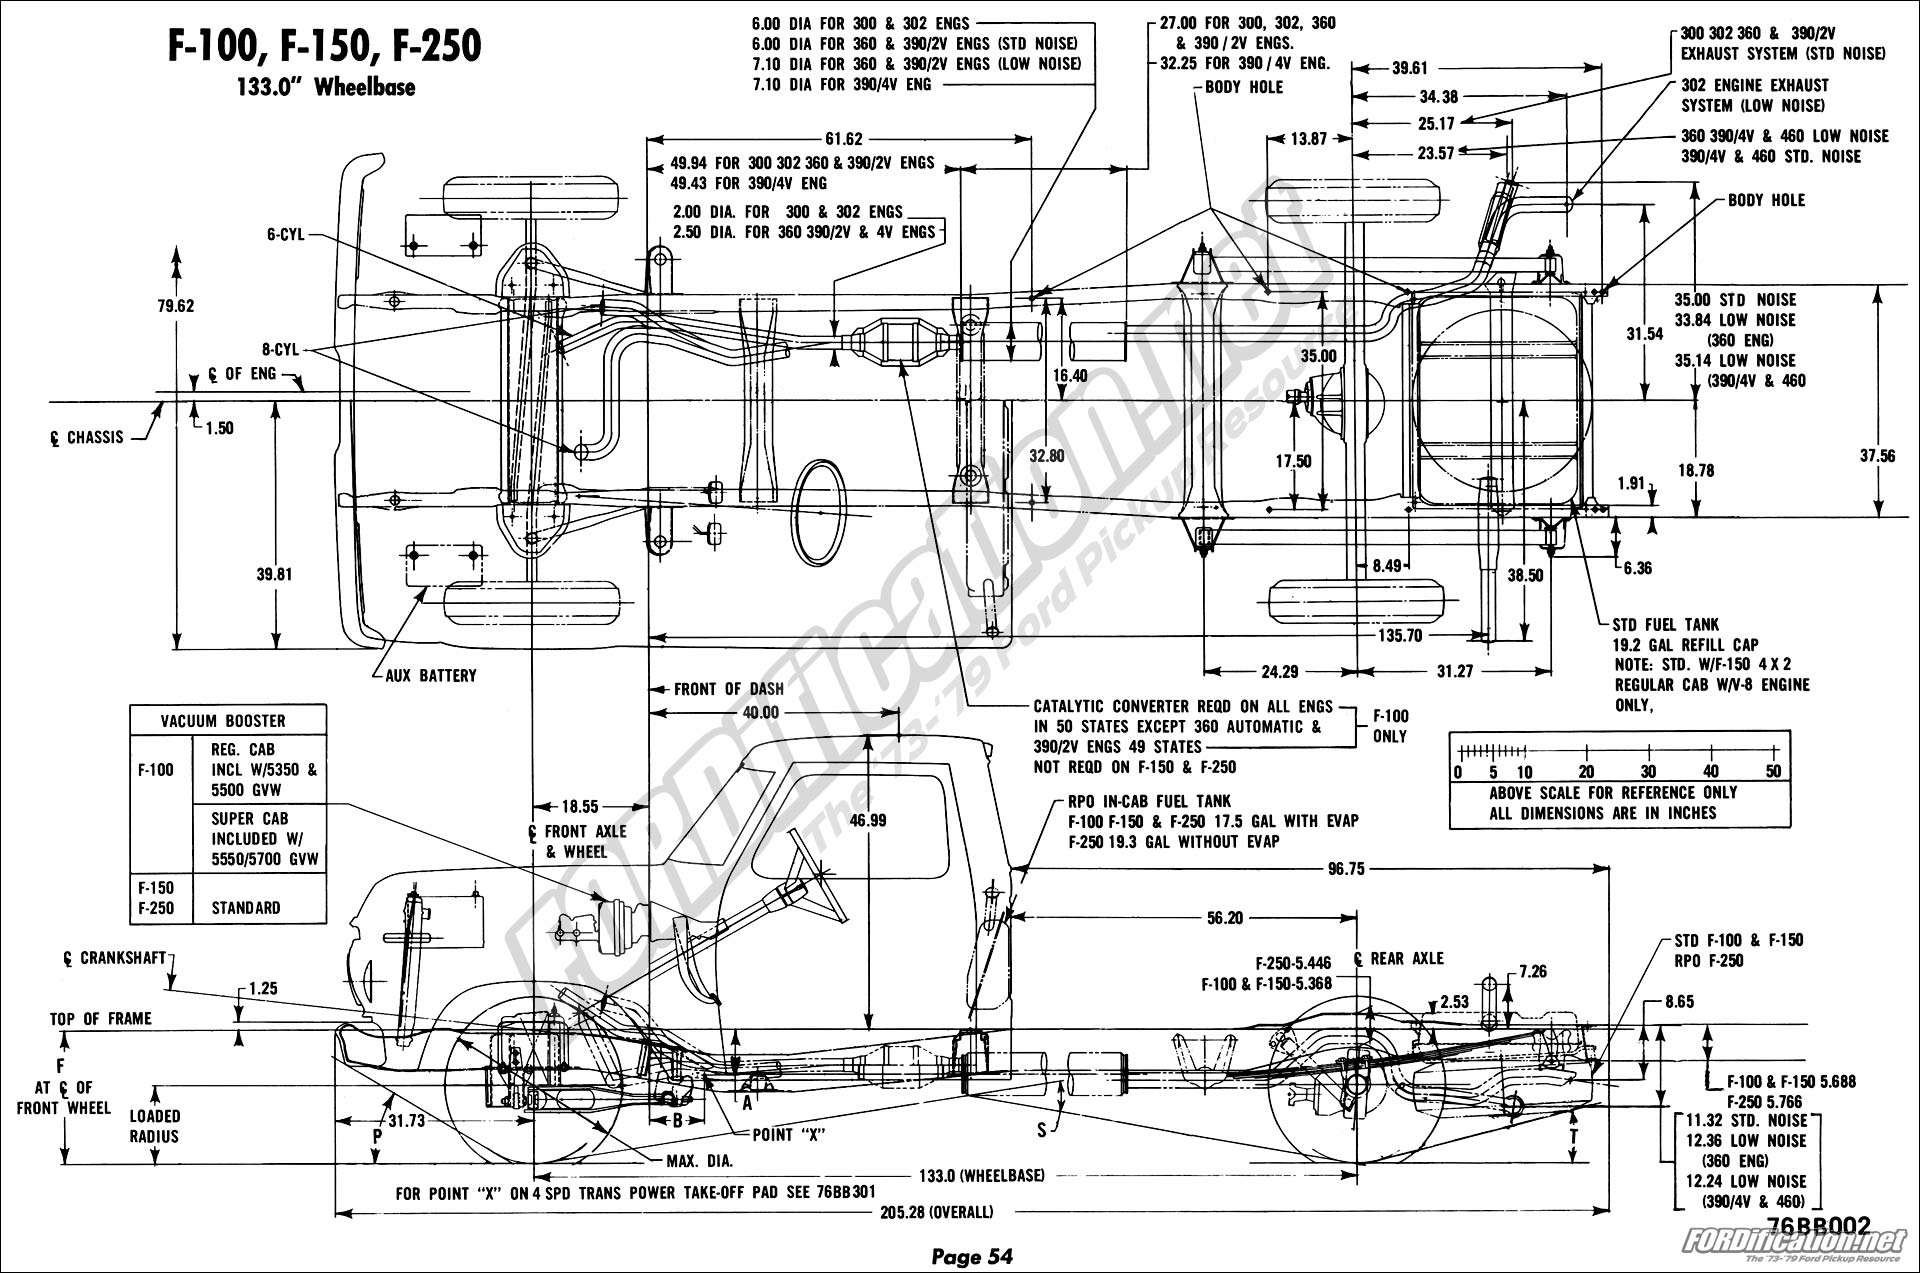 2001 Ford F 150 Frame Diagram Detailed Wiring Diagrams 250 Fuse Box Fix F150 Scematic Parts Catalog